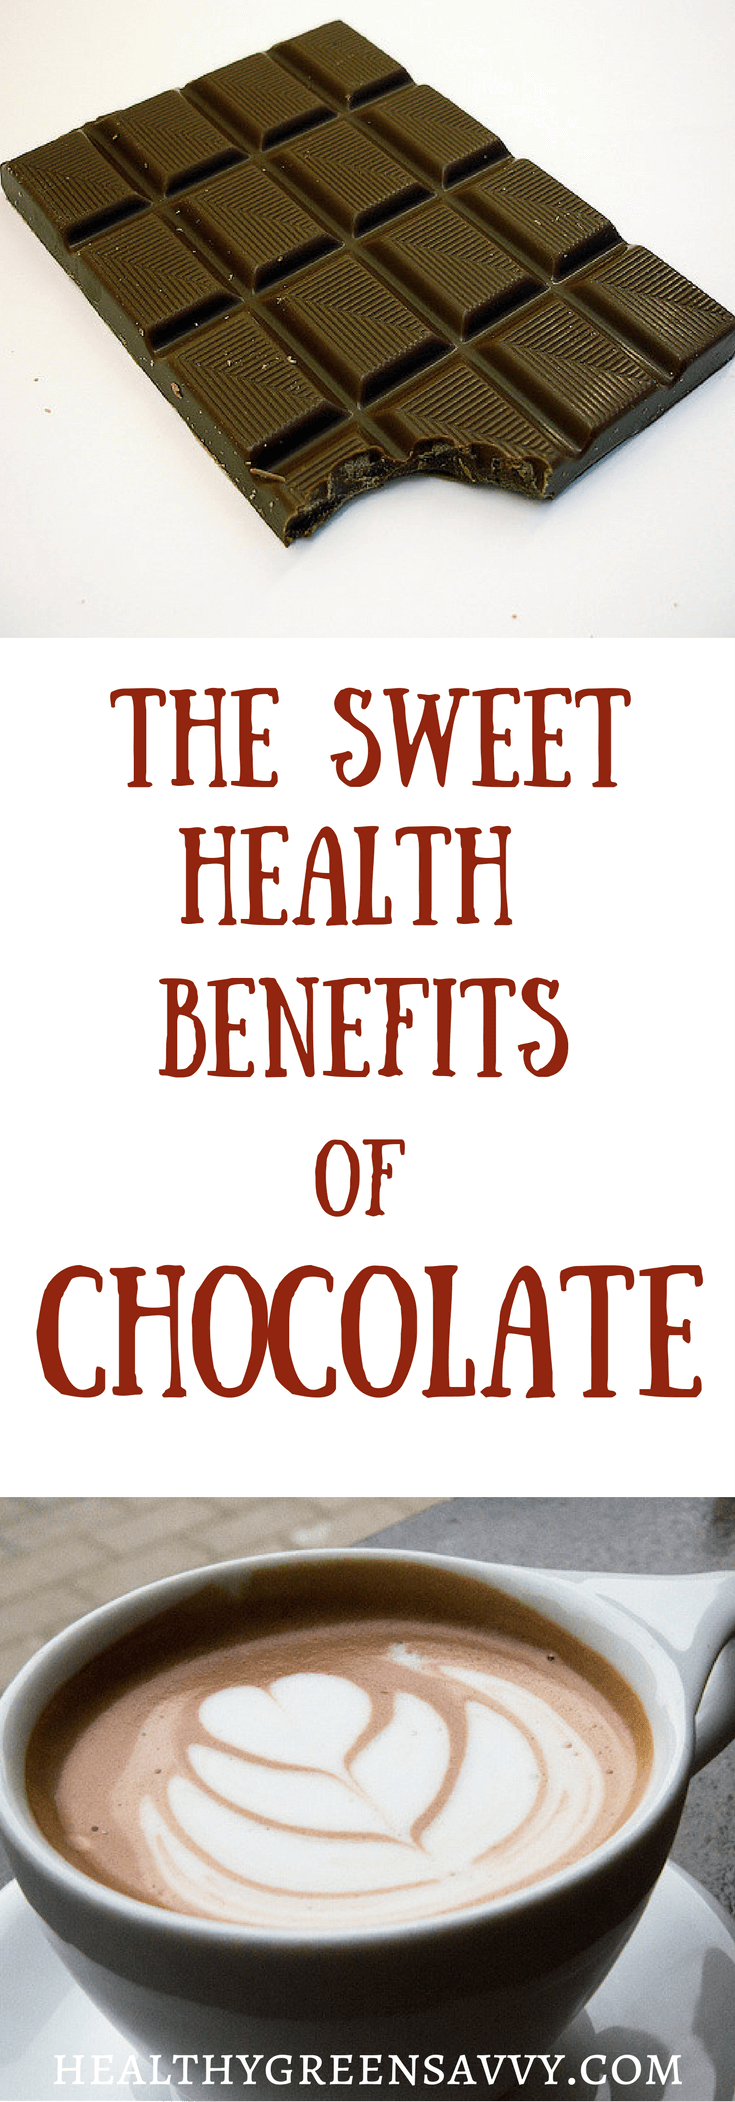 The Sweet Health Benefits of Chocolate - HealthyGreenSavvy